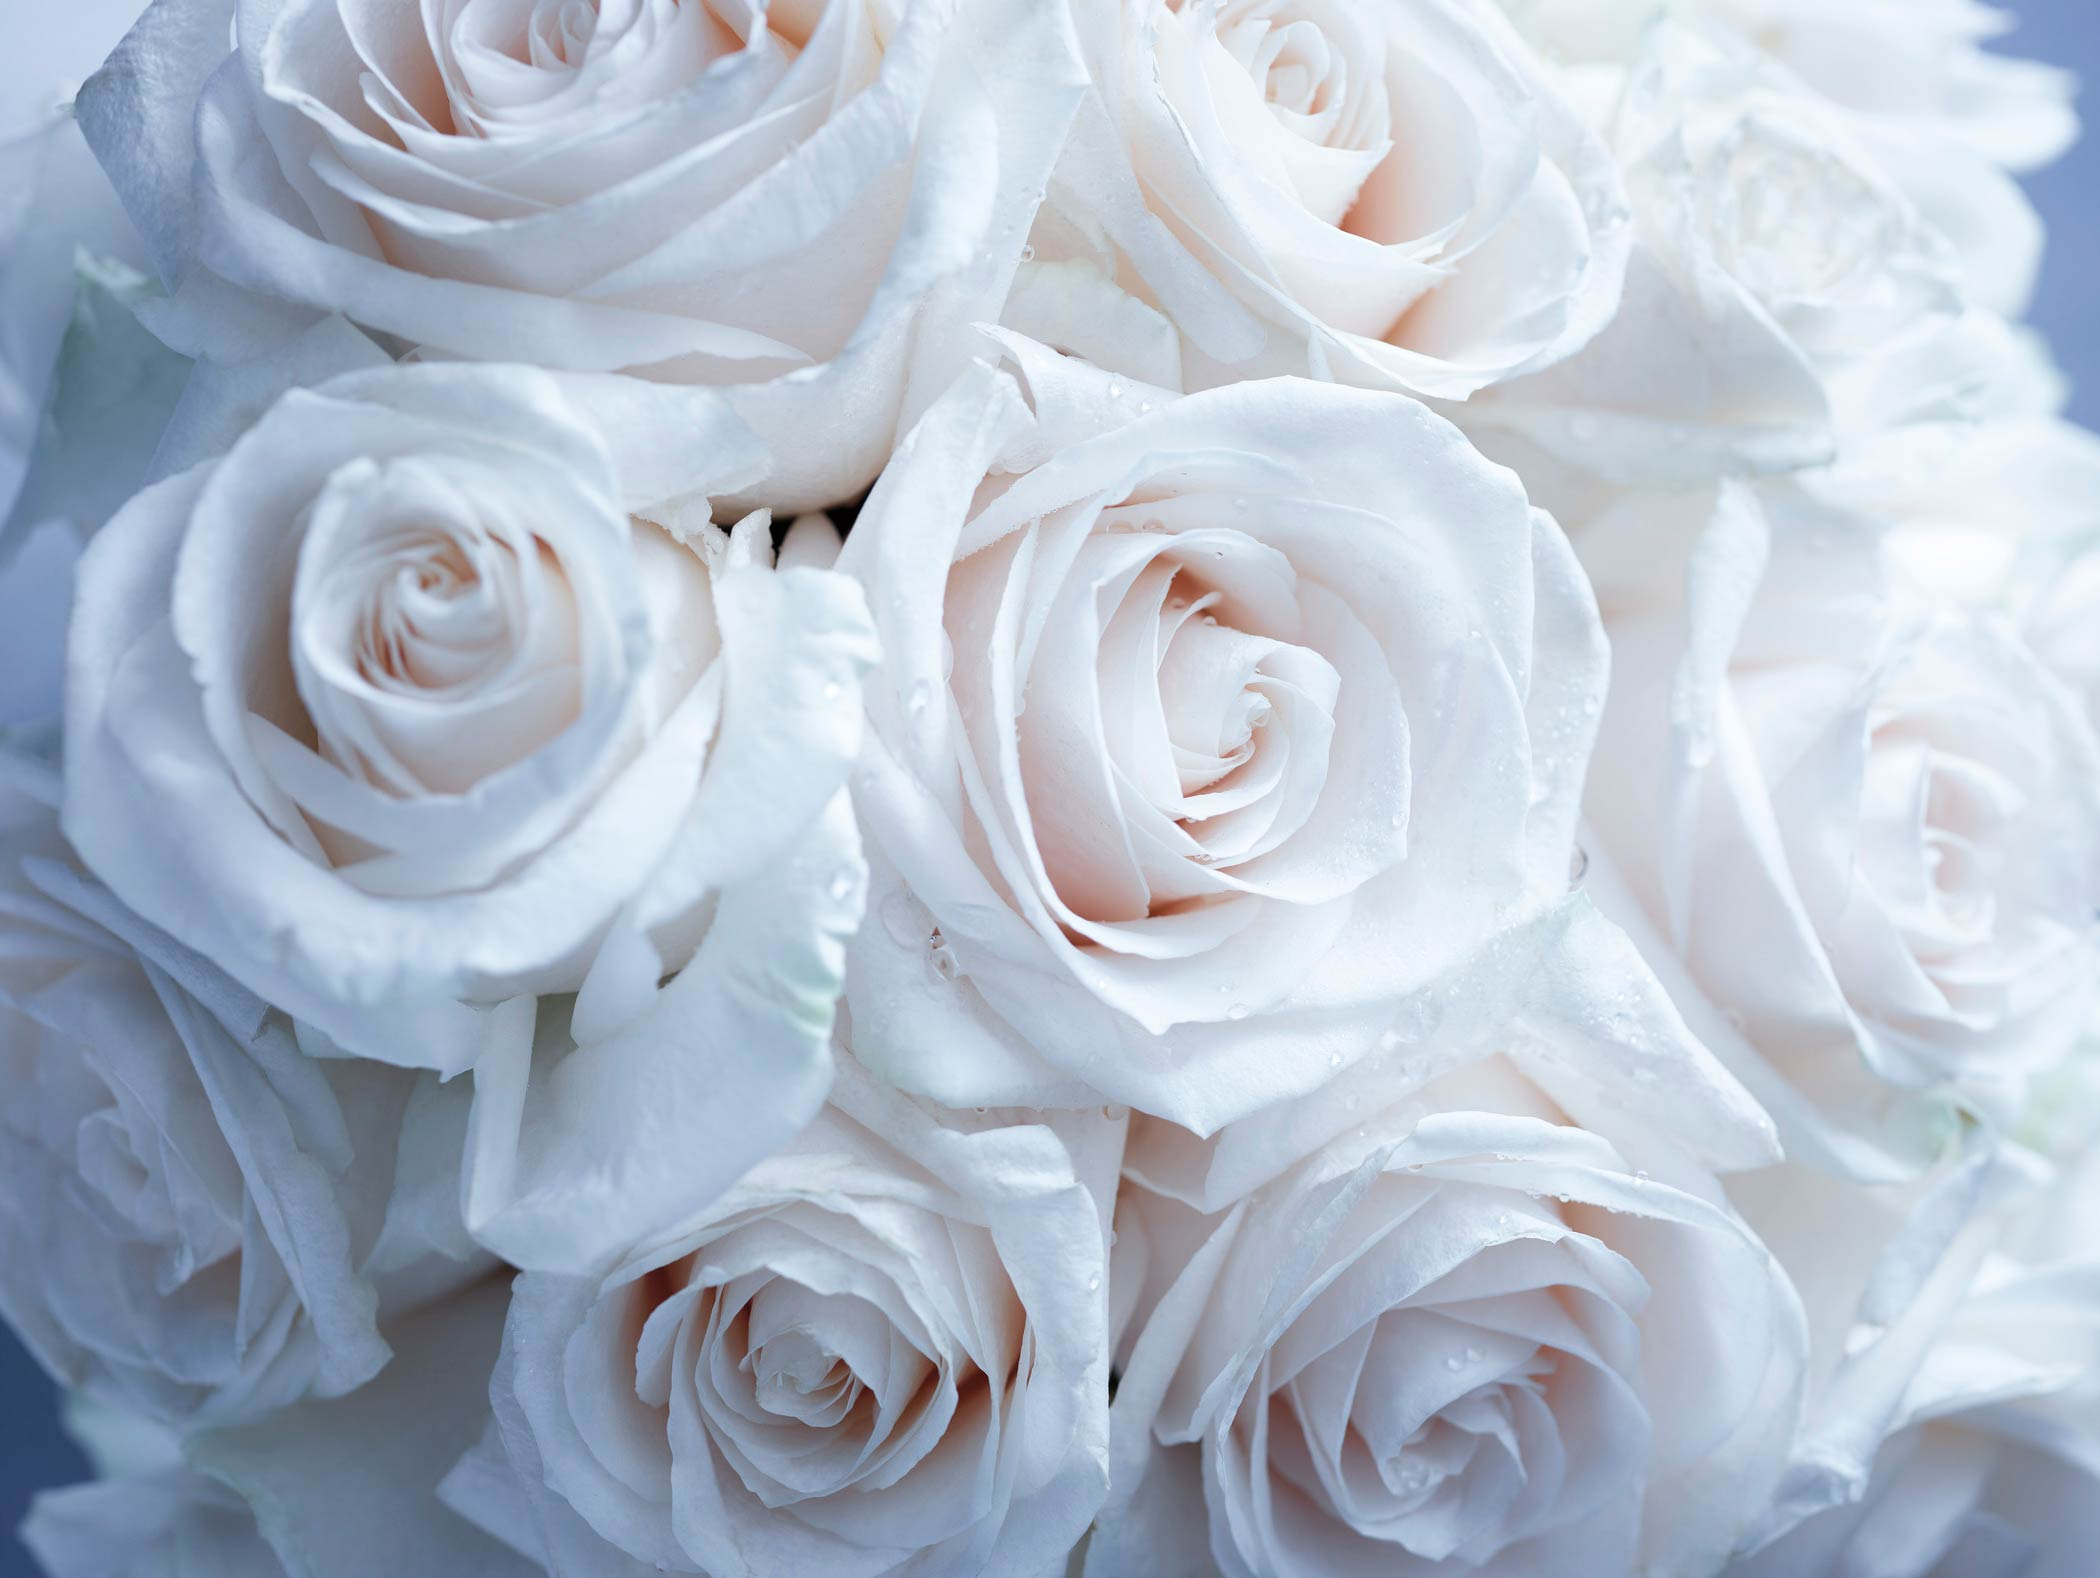 Group of white roses